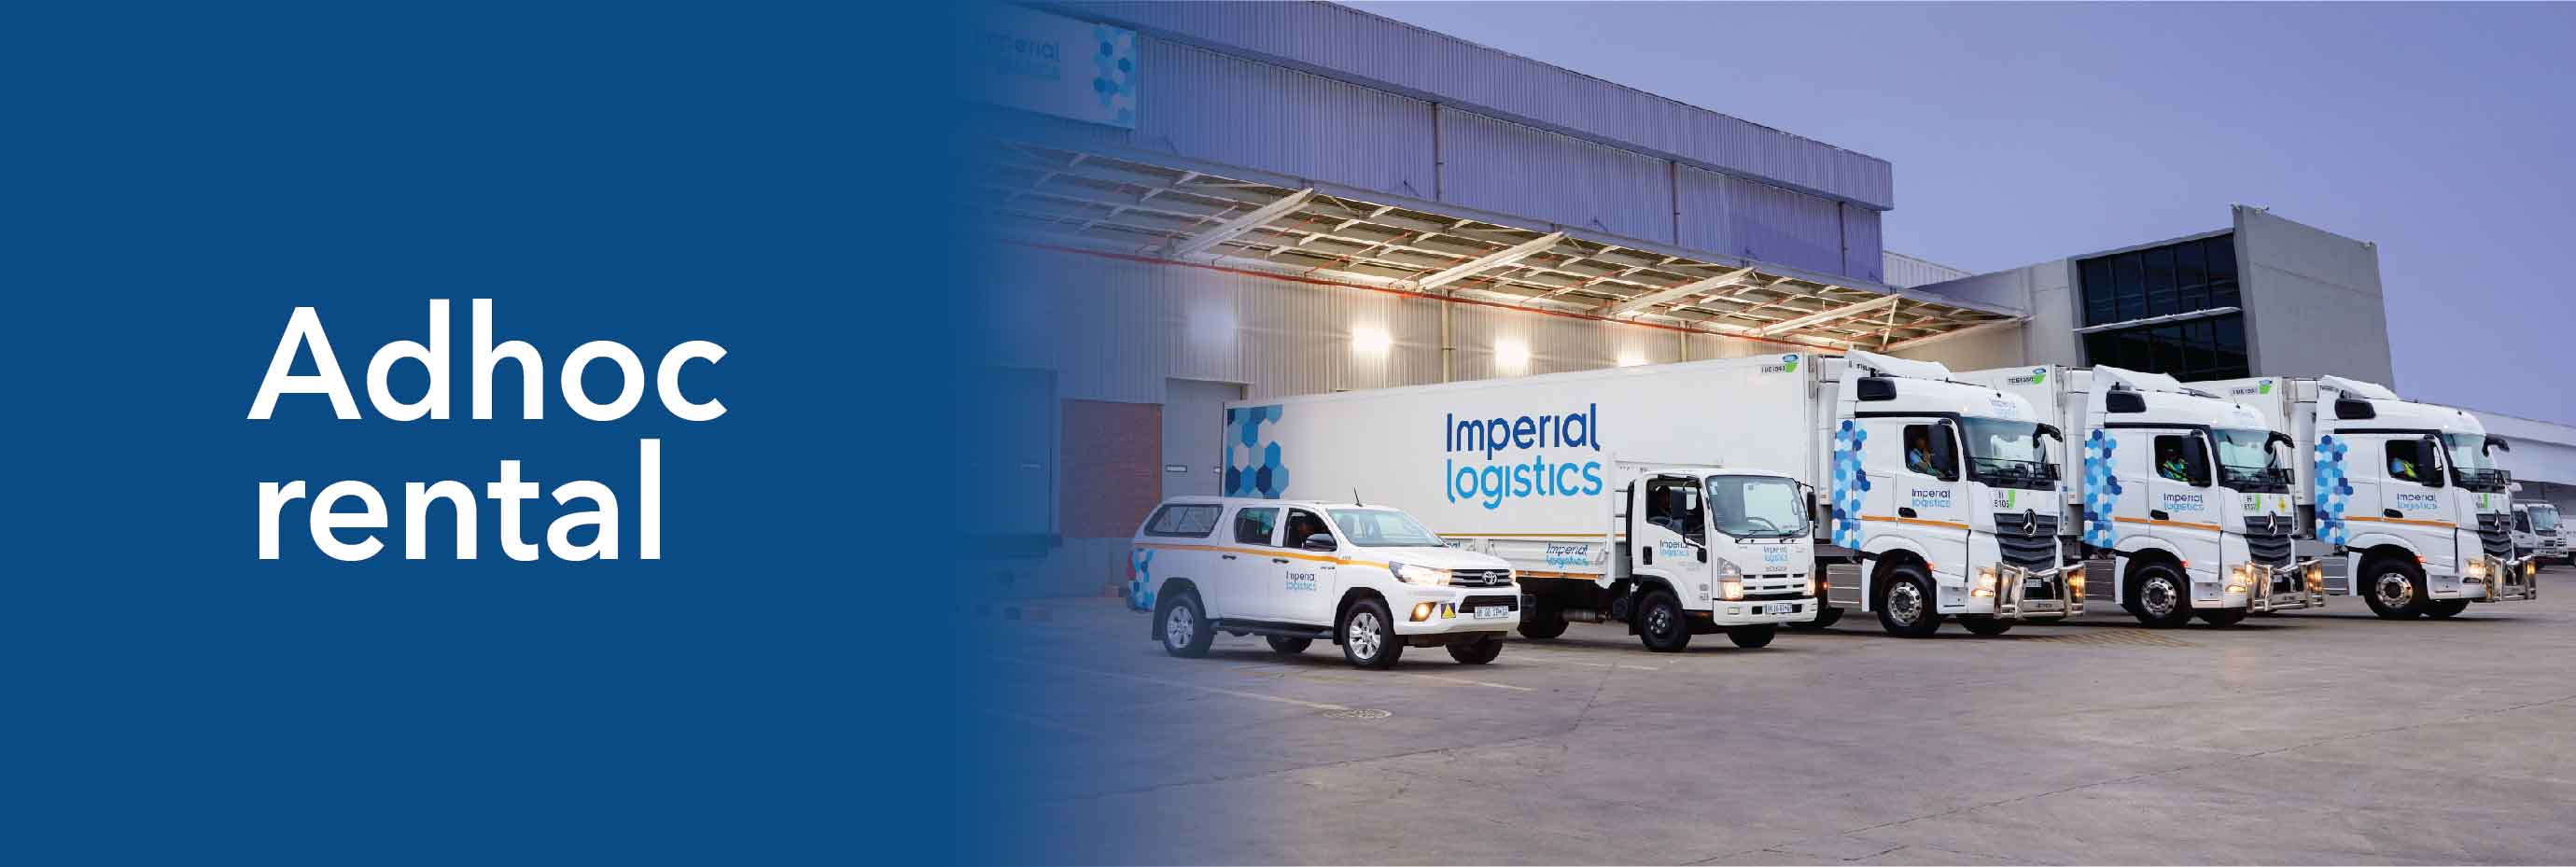 Imperial-Truck-Hire_Adhoc-Rental_29-May-2019-01